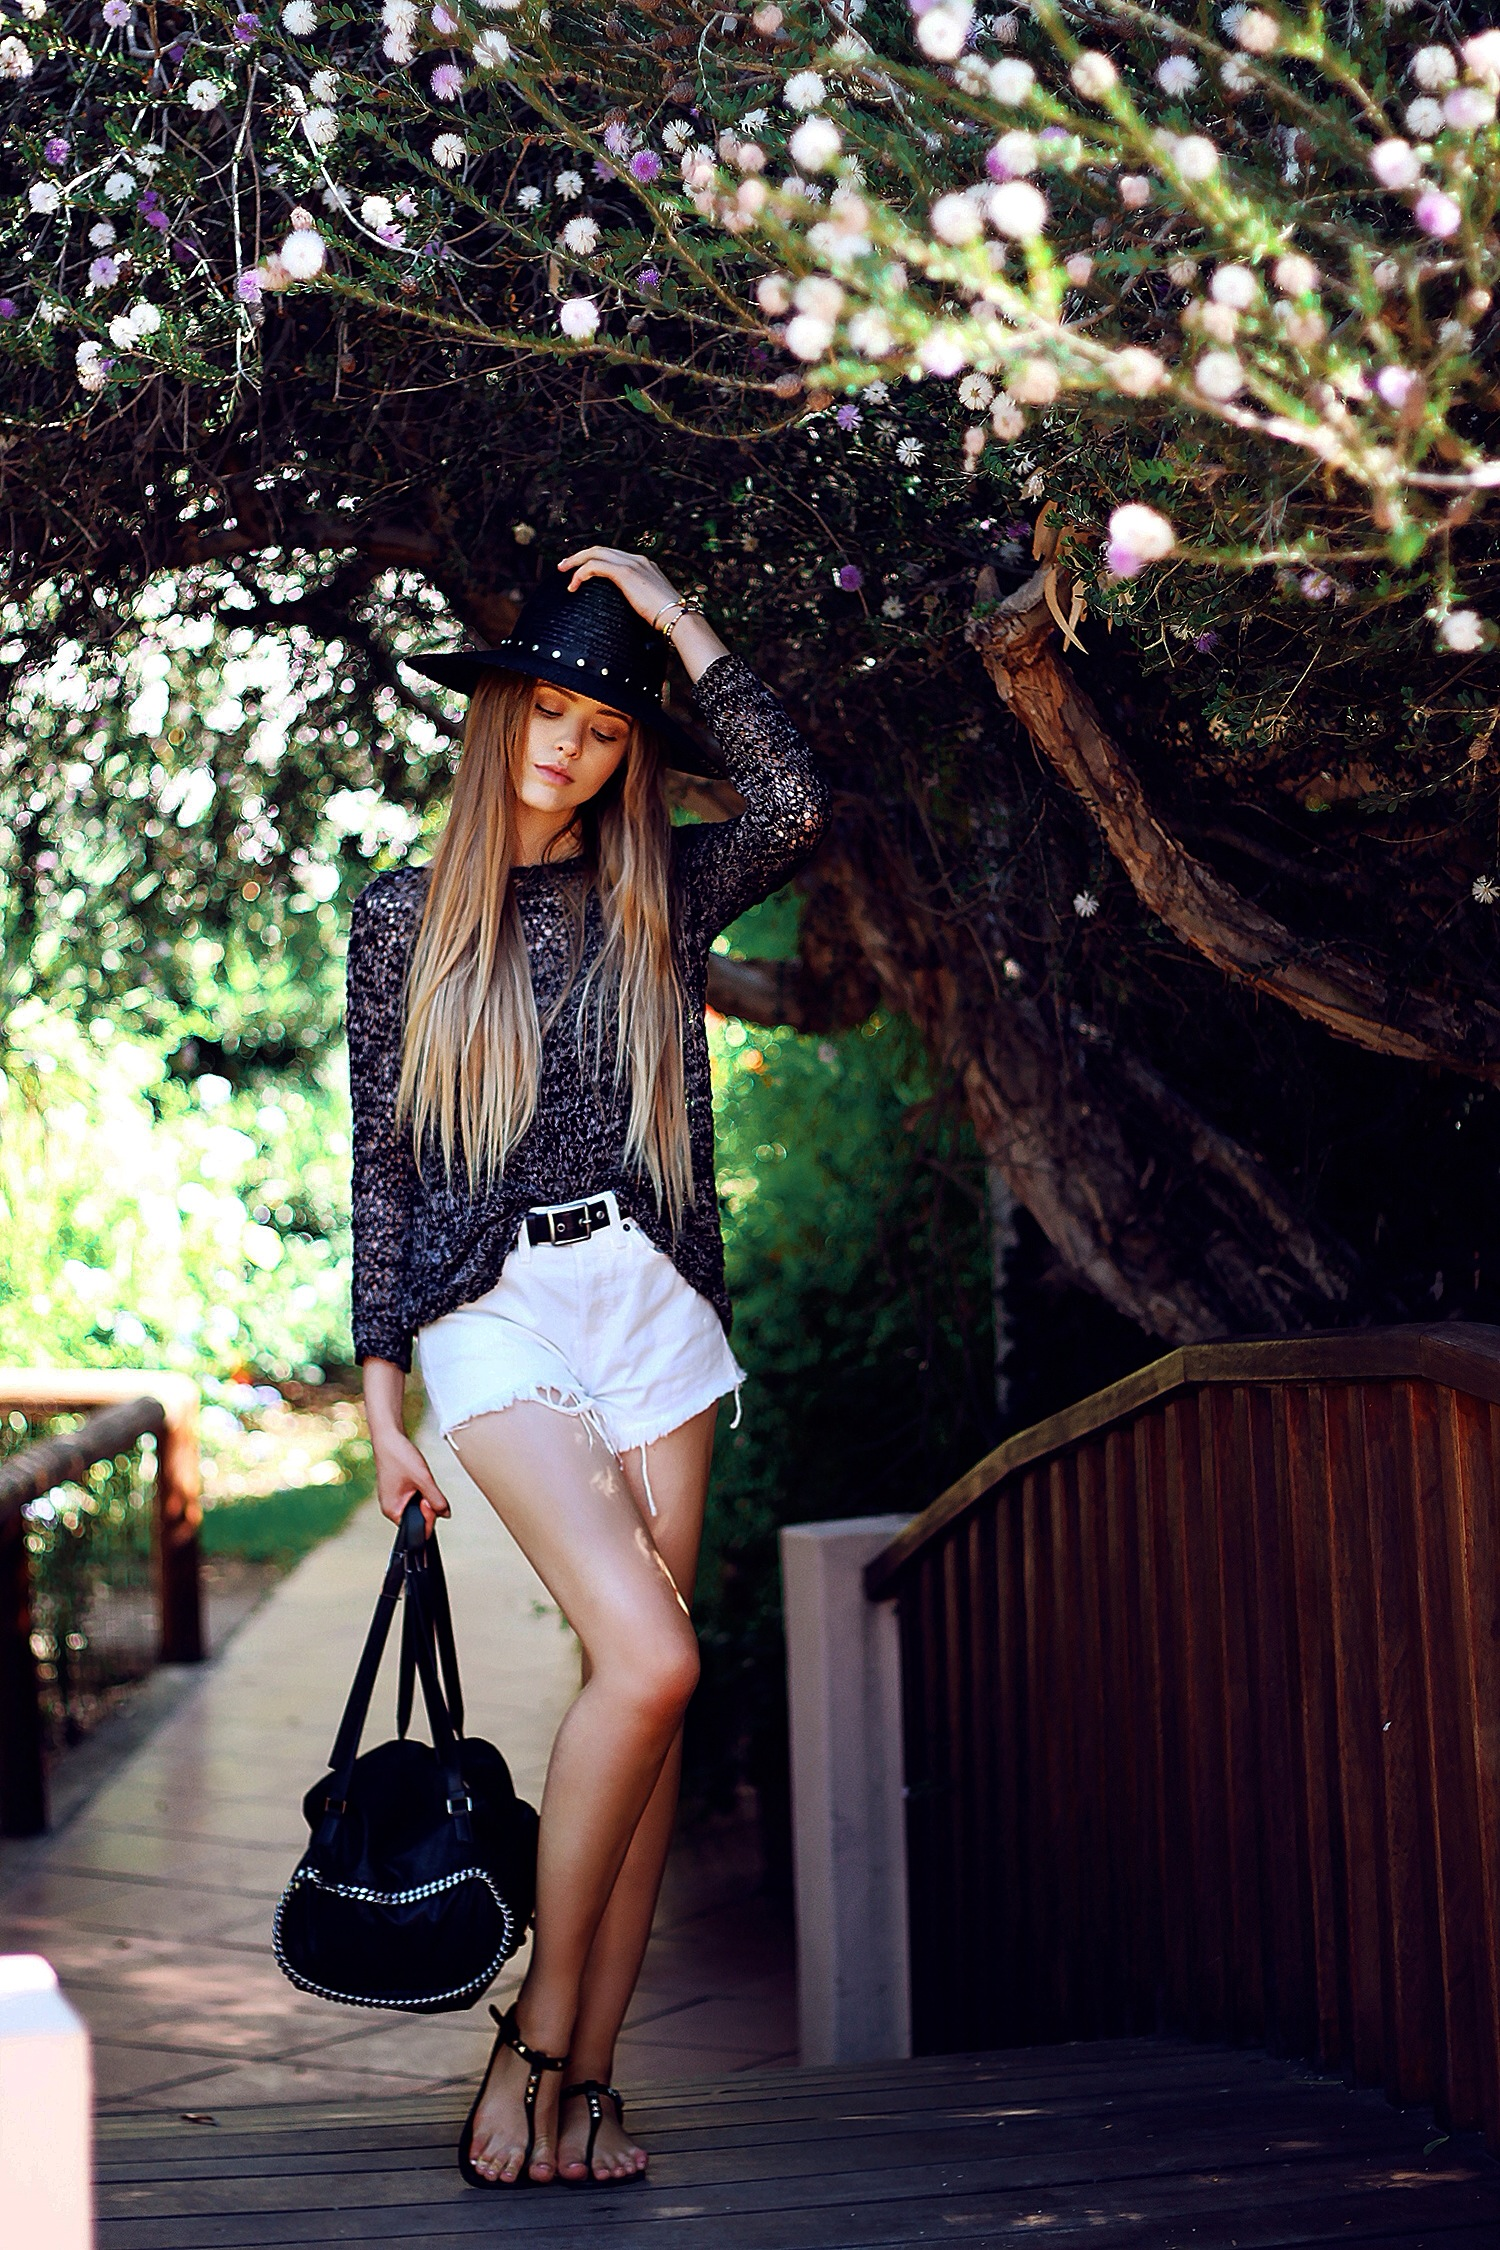 Kristina Bazan is wearing a sequin top, shorts from Guess, hat from The Kooples, shoes from Just Anna and a bag from Stella McCartney